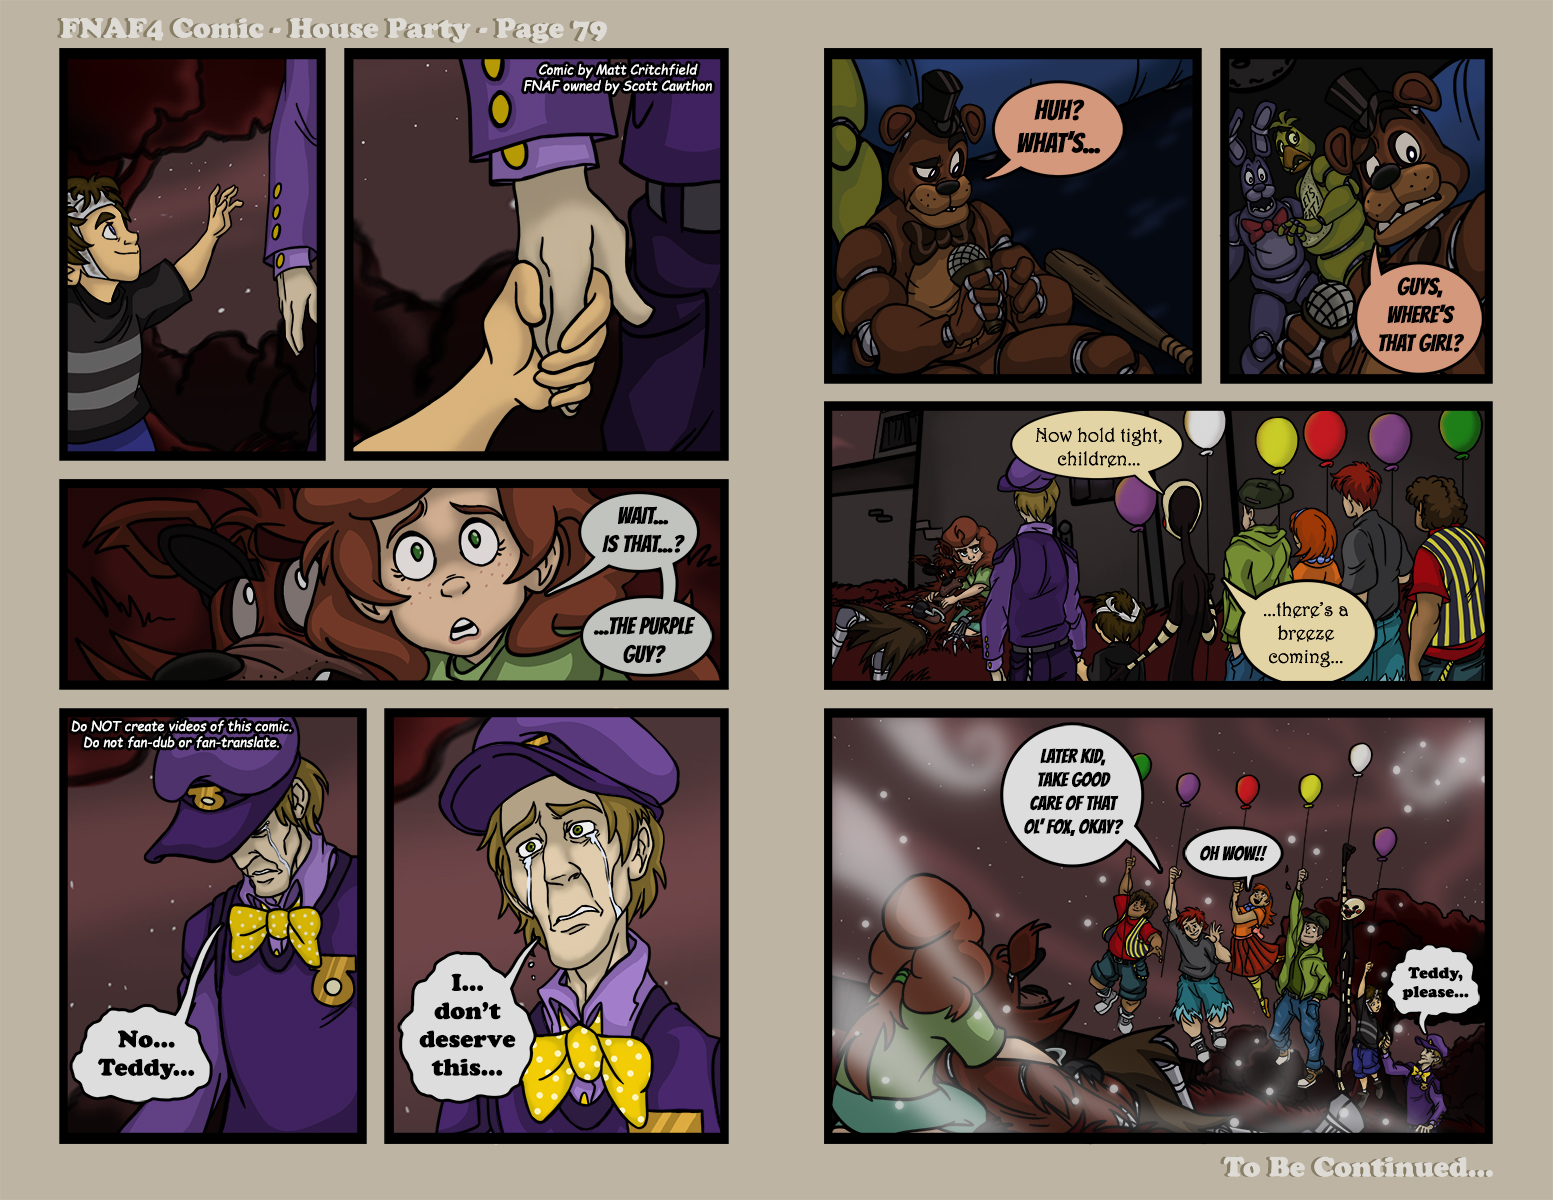 FNAF4 Comic House Party Page 79 7717 by